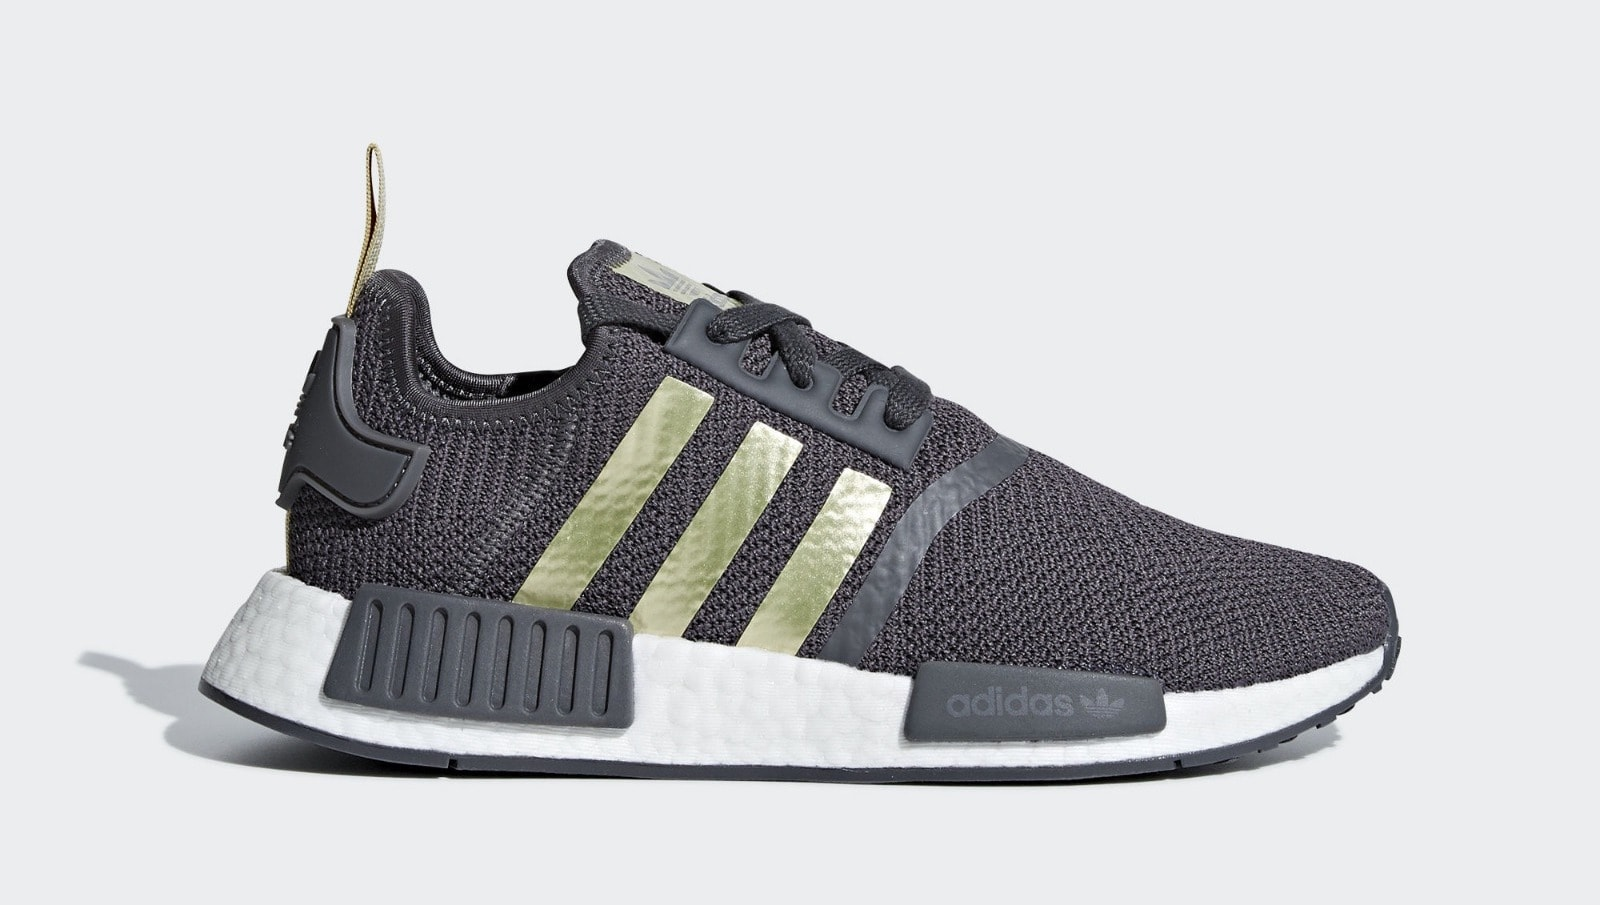 a775588c5cde3 adidas NMD R1 Release Date  Coming Soon Price   130. Color  FTWR White  Copper Met Ash Pearl Style Code  B37650